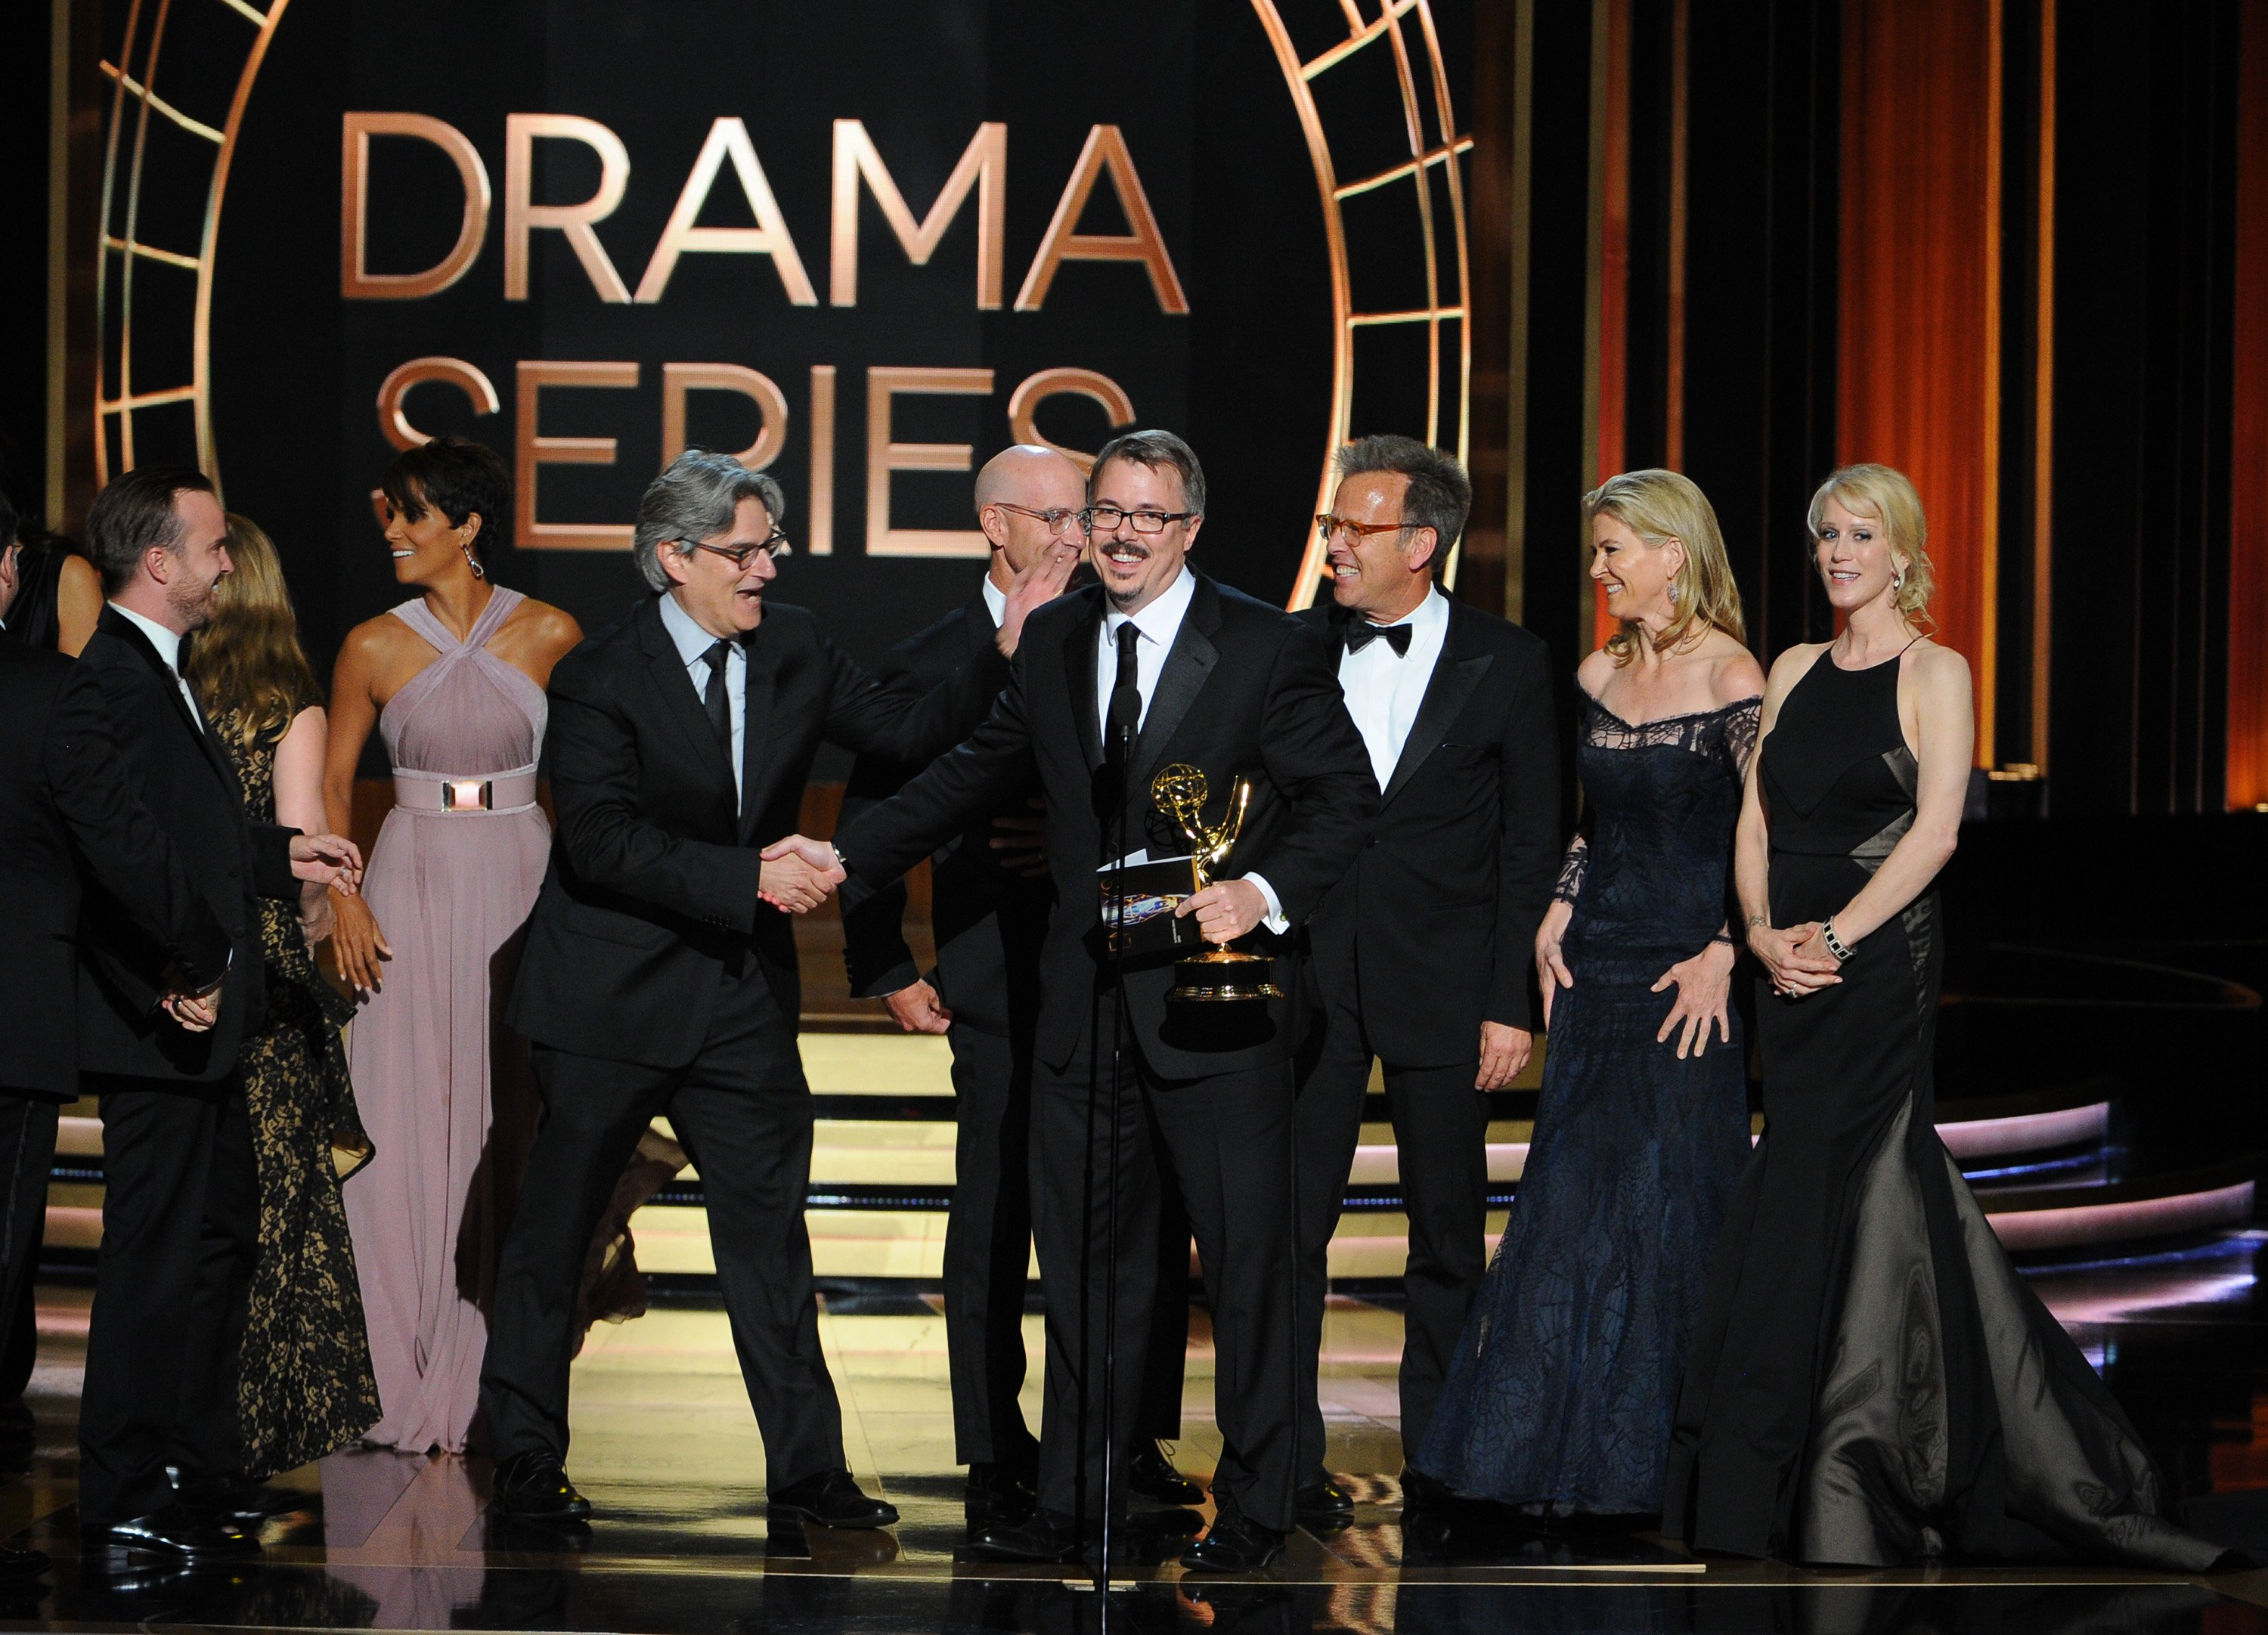 """Vince Gilligan, center, and the cast and producers of """"Breaking Bad"""" accept the award for outstanding drama series at the 66th Primetime Emmy Awards at the Nokia Theatre L.A. Live on Monday, Aug. 25, 2014, in Los Angeles."""